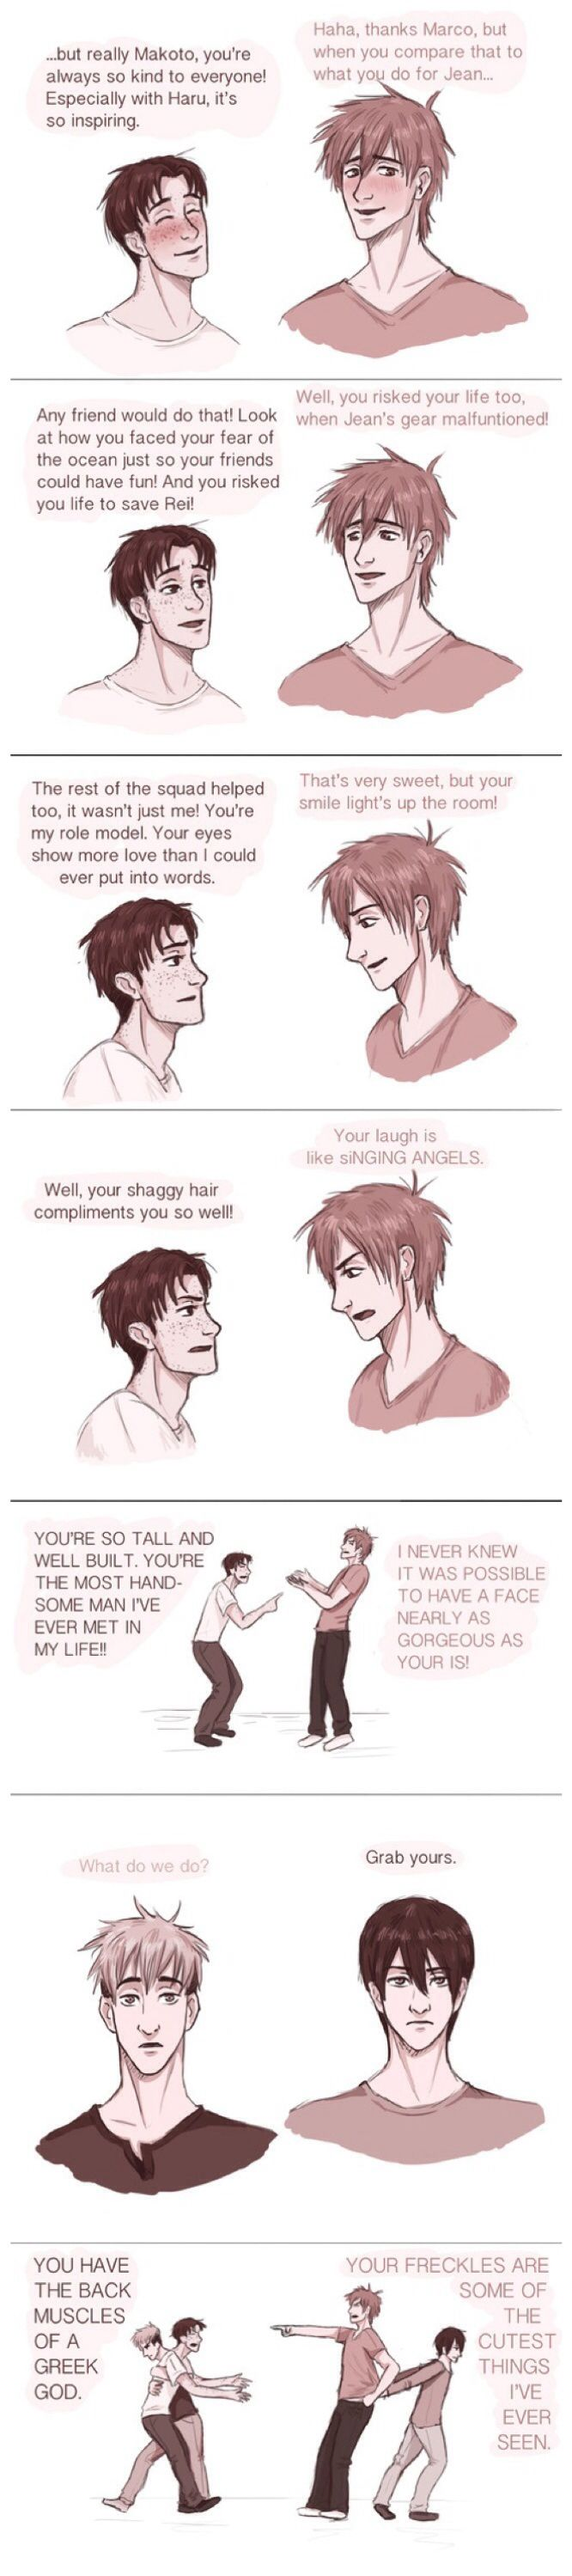 AoT/Free! ~~ Marco and Makoto compare notes... until Jean and Haruka have to break it up. :: THIS IS GREAT!!